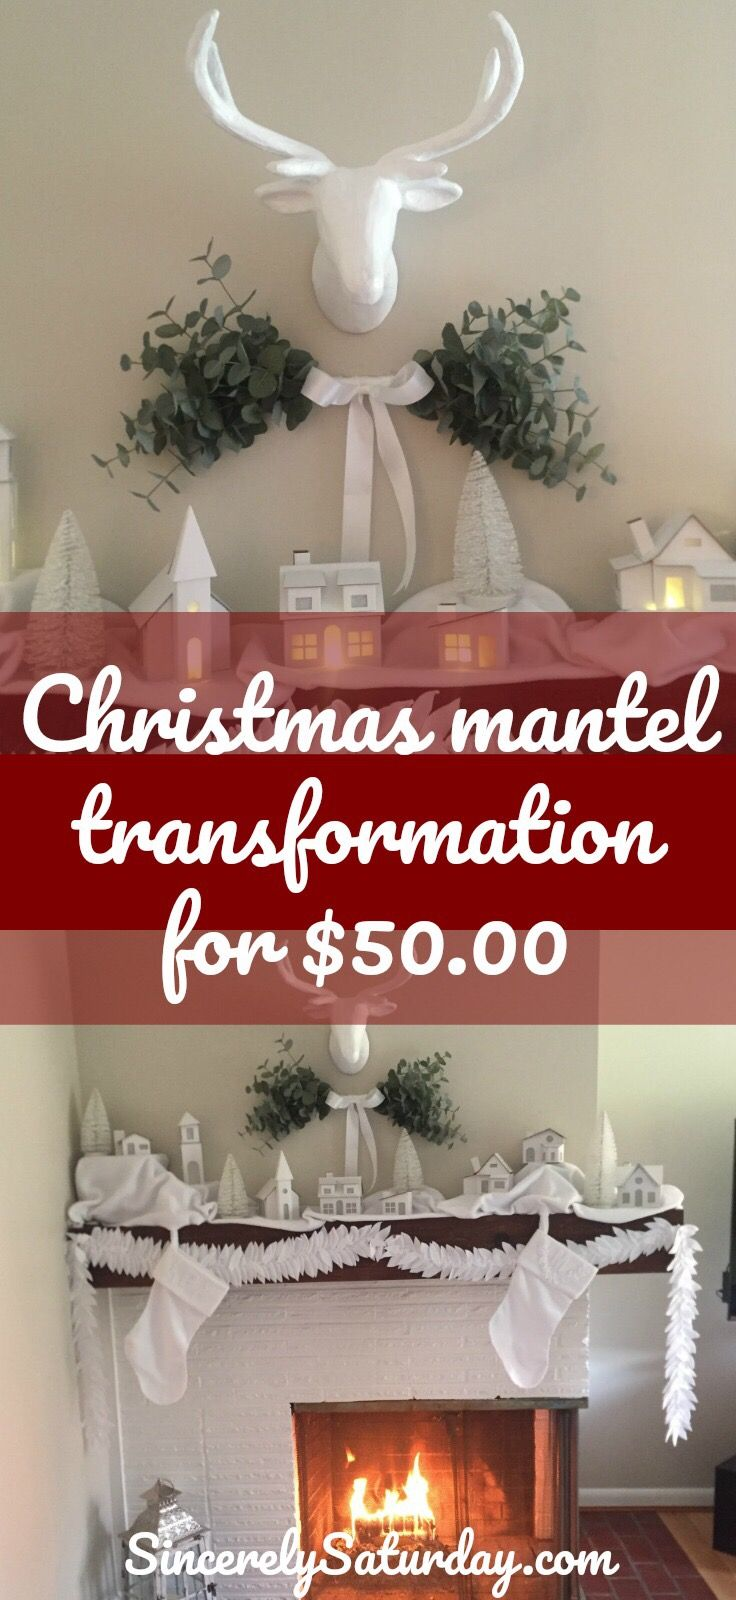 It's official. Christmas is only a week away. With it fast approaching I wanted to share my $50.00 Christmas mantel transformation. With a little elbow grease and some time you can easily make you mantel a white winter scene. For the easy to follow tutorials for the garland and stockings go to sincerelysaturday.com. #whitechristmas #christmas #holiday #snow #garland #stockings #diy #DIY #crafts #easy #cheap